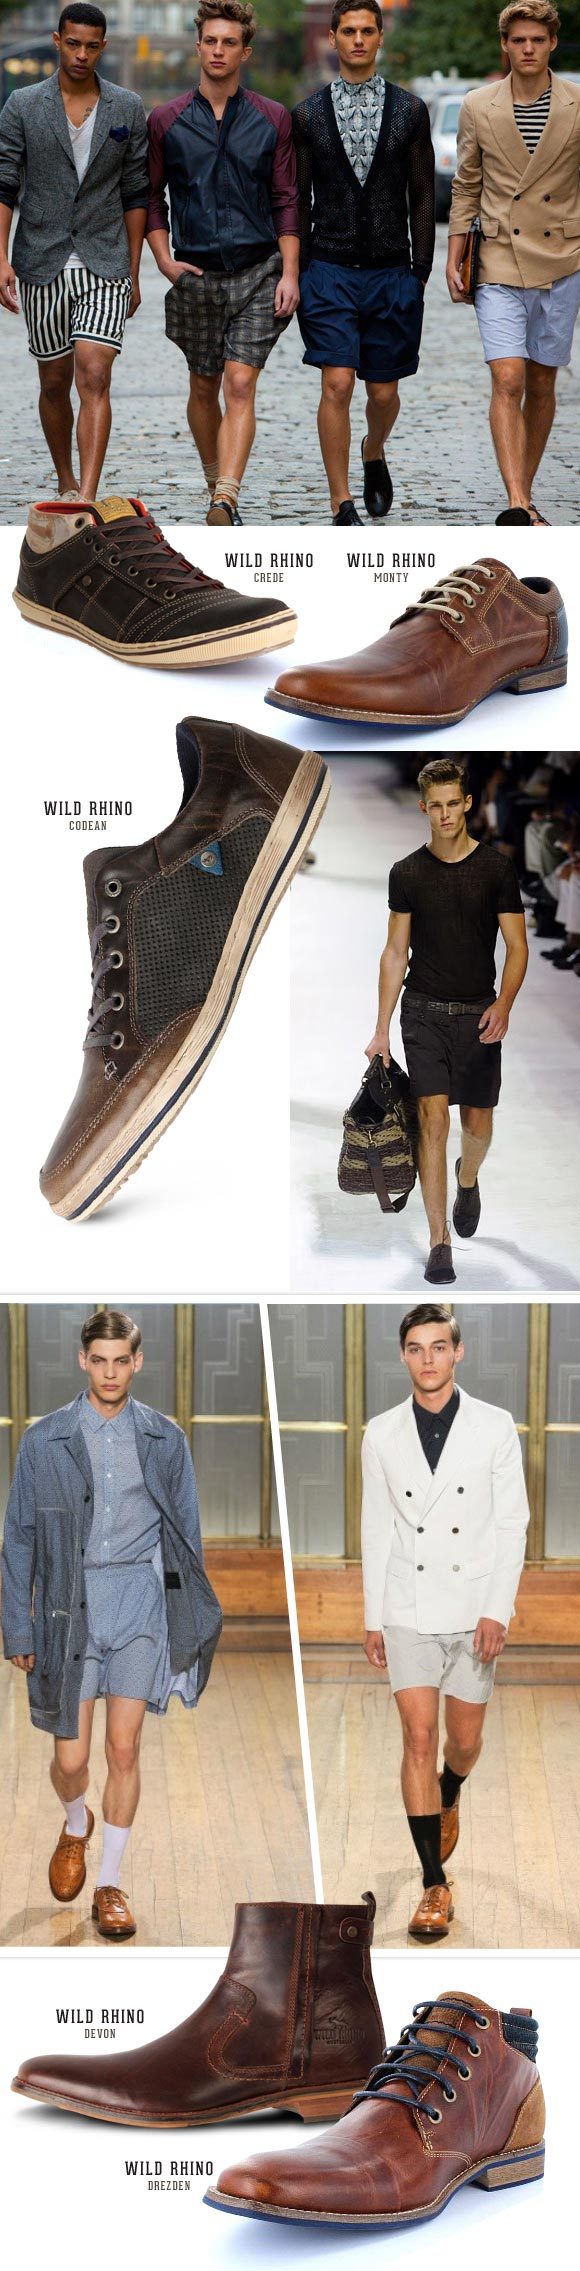 CASUAL SUMMER SHOES FOR MEN | TheShoeLink